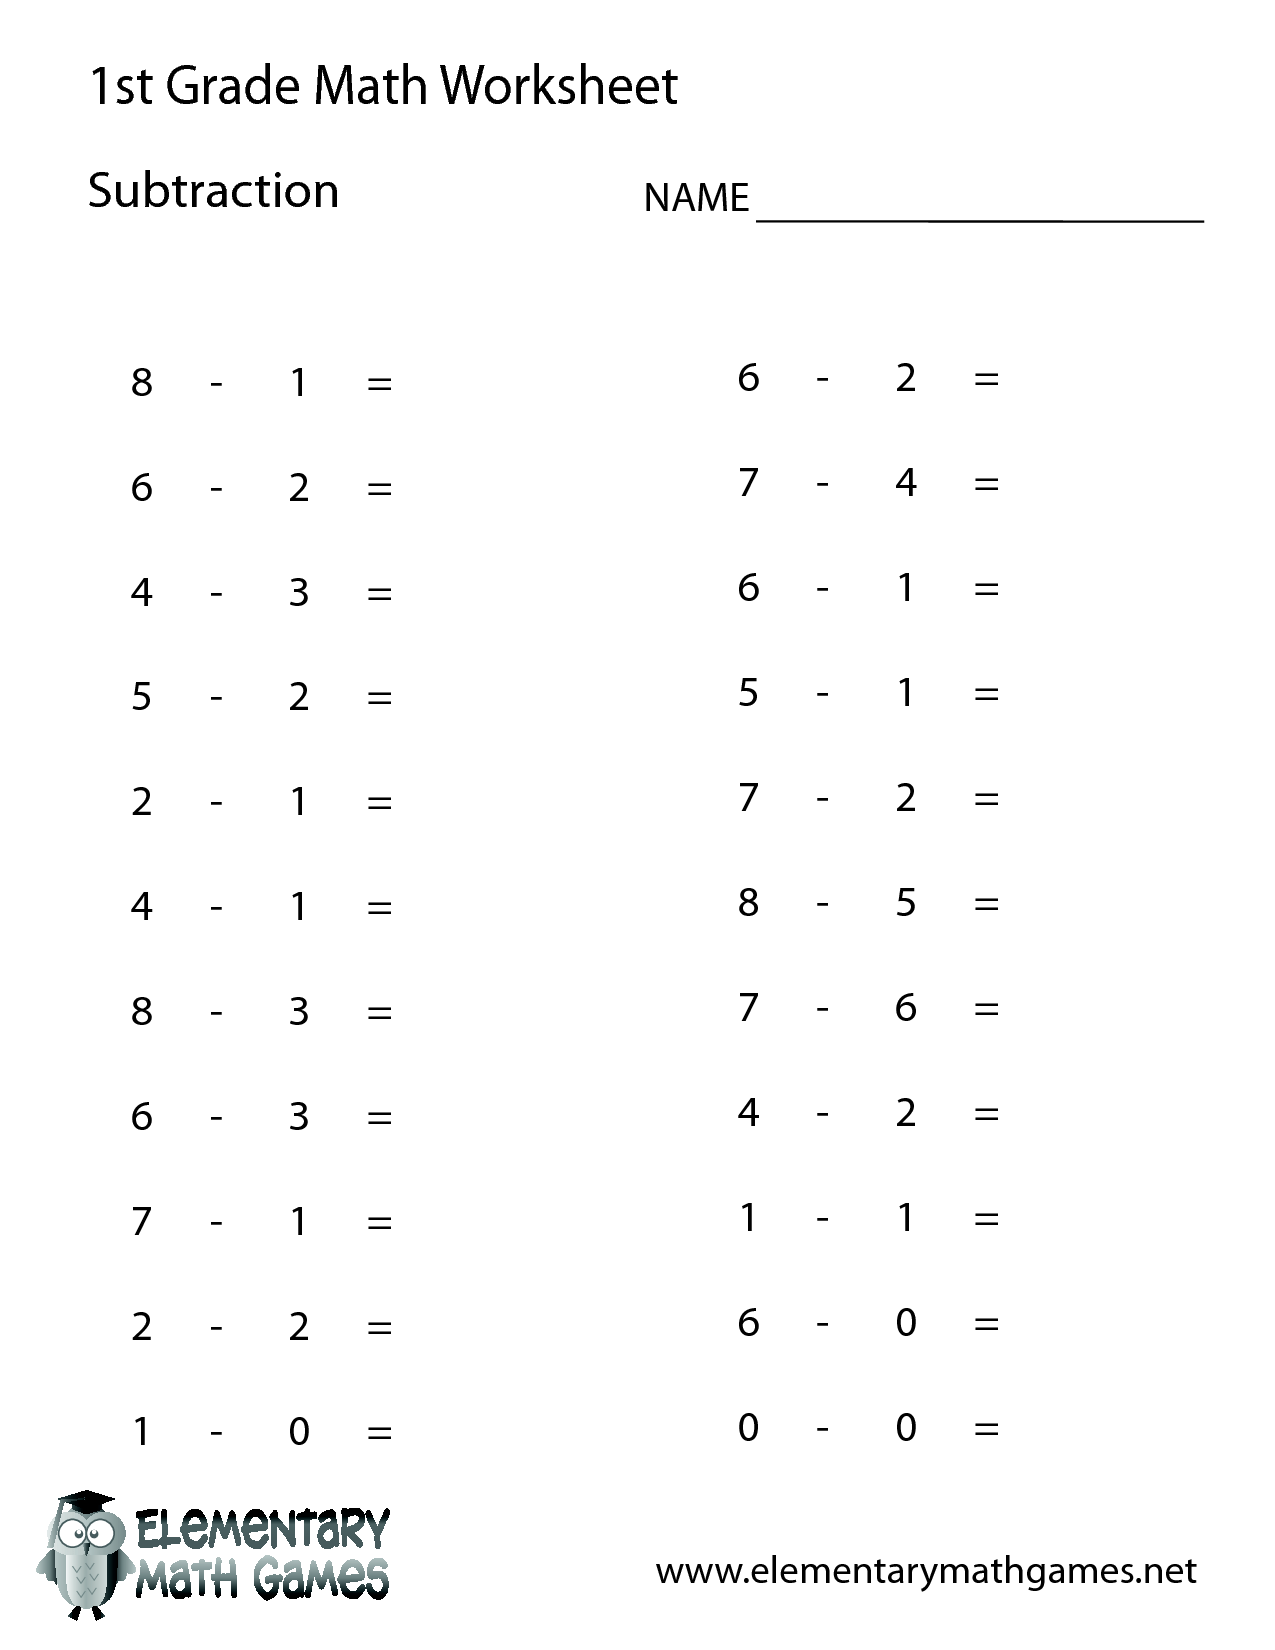 1st Grade Worksheet Category Page 4